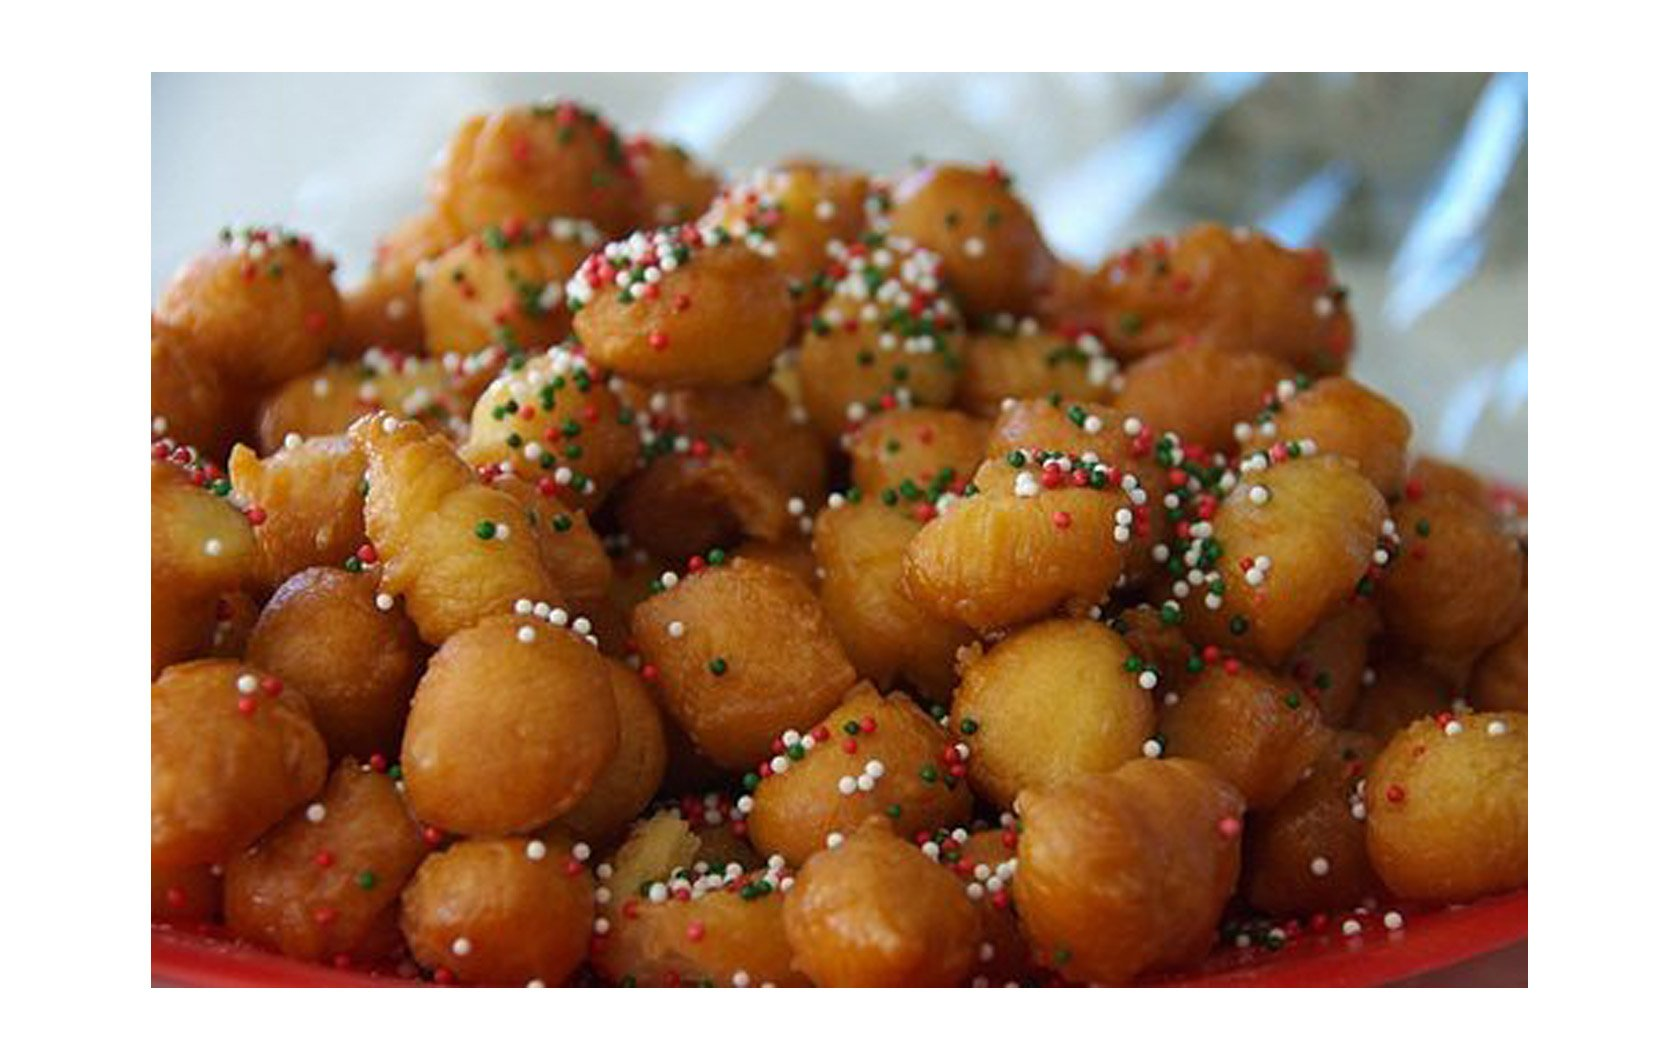 Recipe for Italian Christmas Struffoli